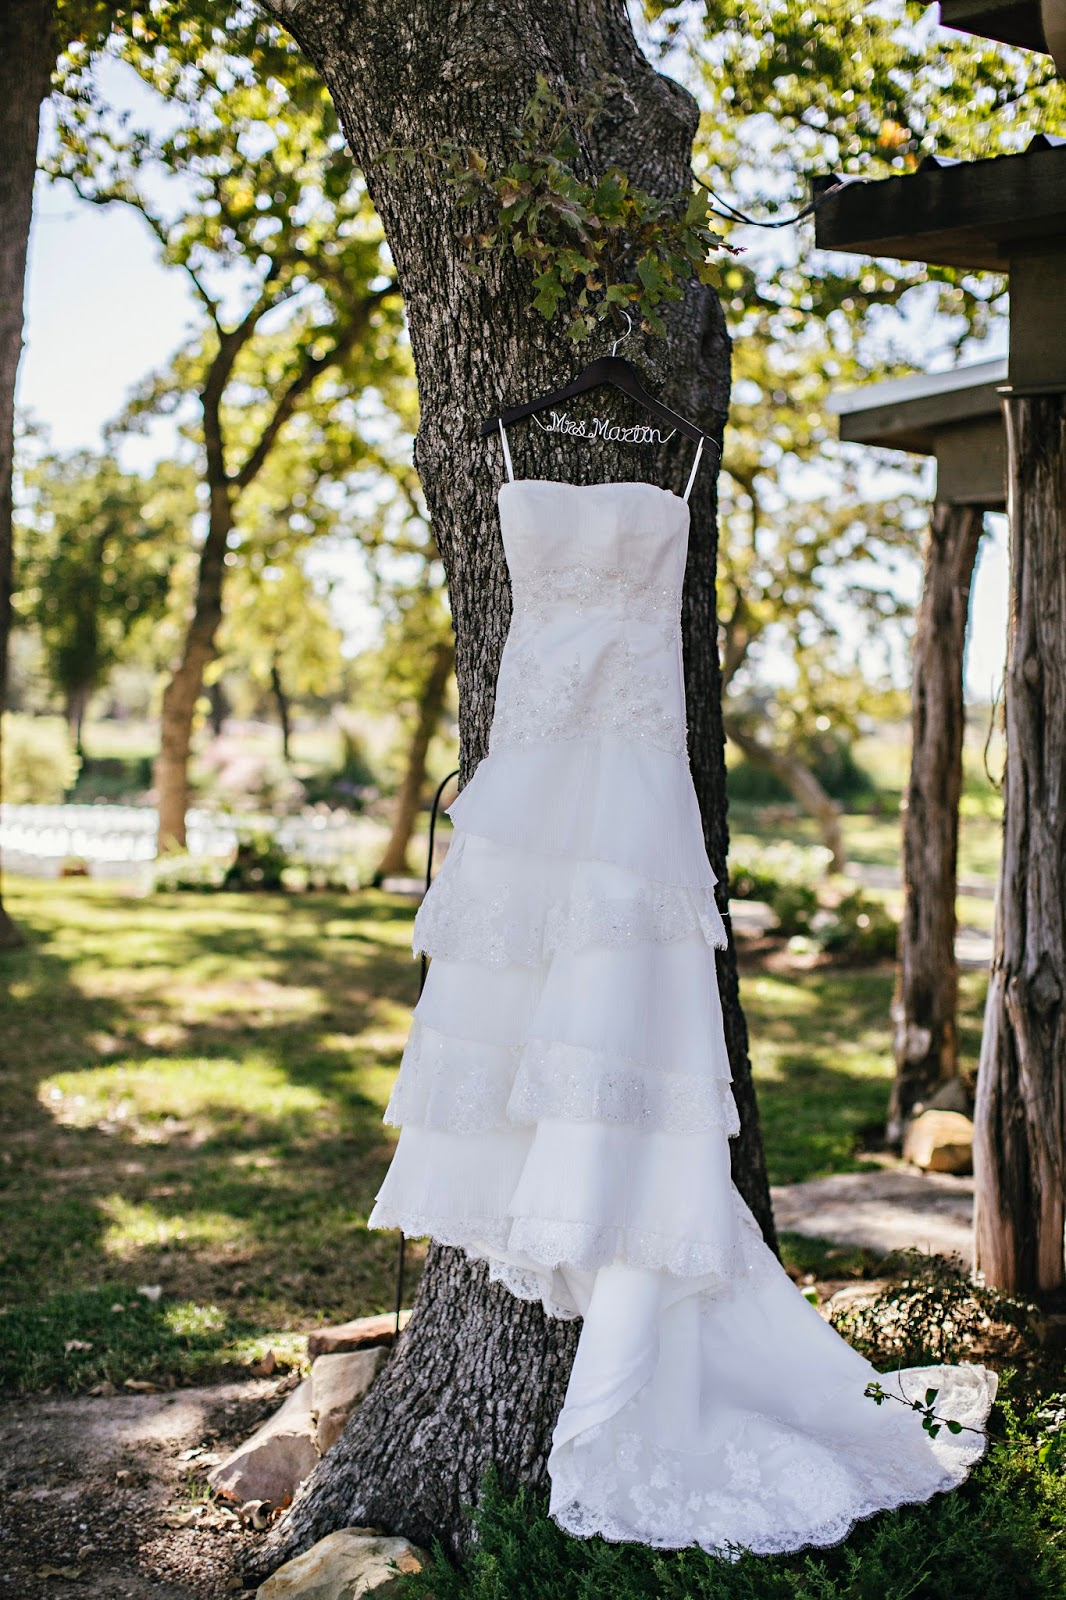 Wedding Tradition, OW Ranch Wedding, Wedding Dress